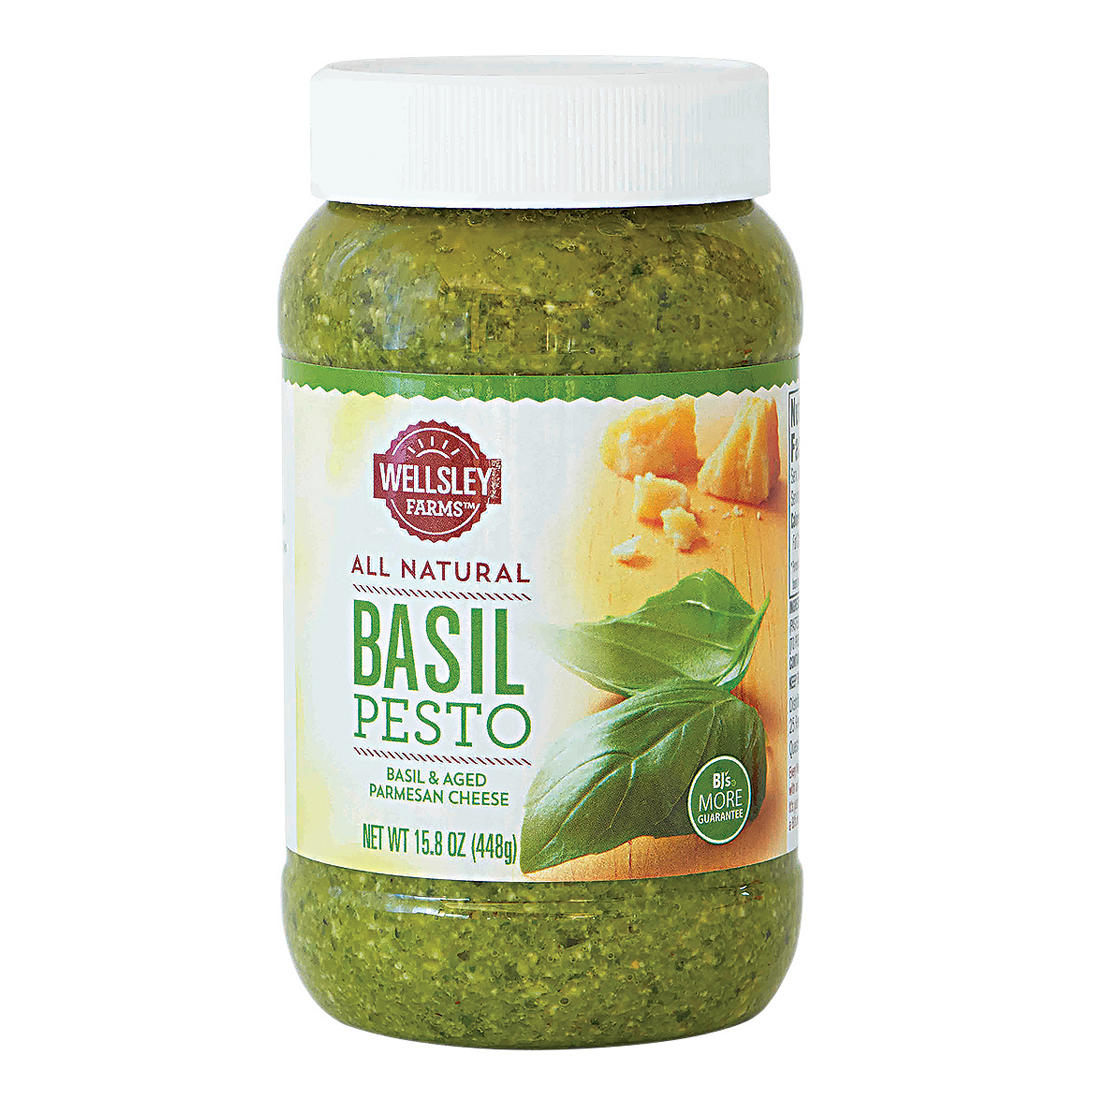 Wellsley Farms All Natural Basil Pesto 15 8 Oz Bjs Wholesale Club